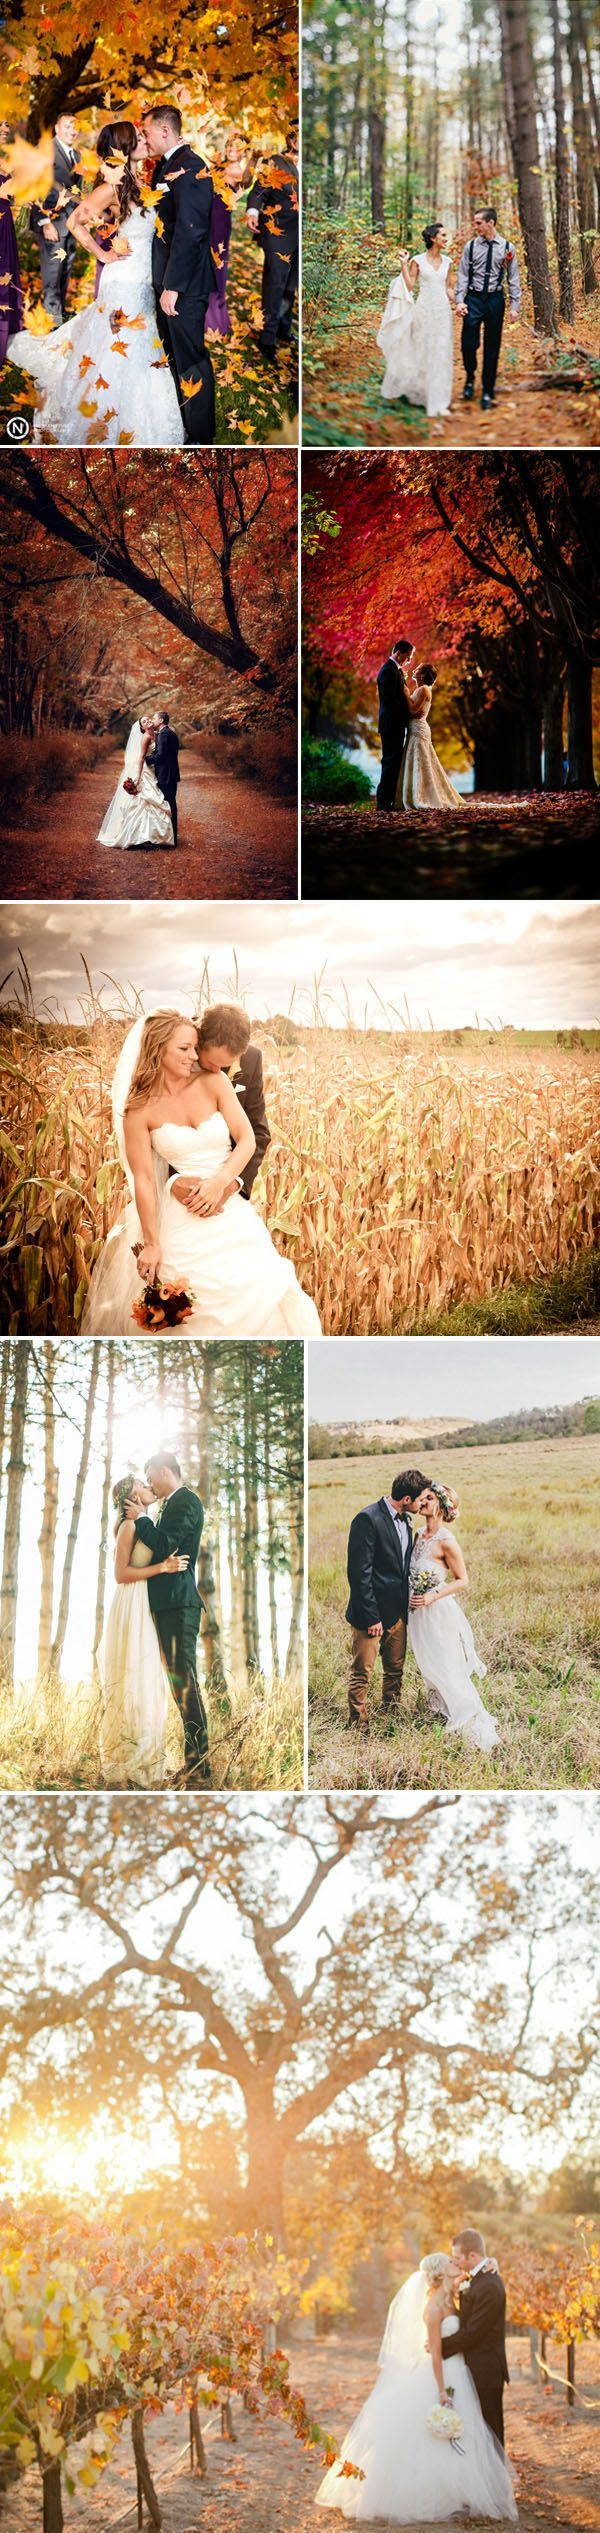 outdoor fall wedding best photos - fall wedding  - cuteweddingideas.com